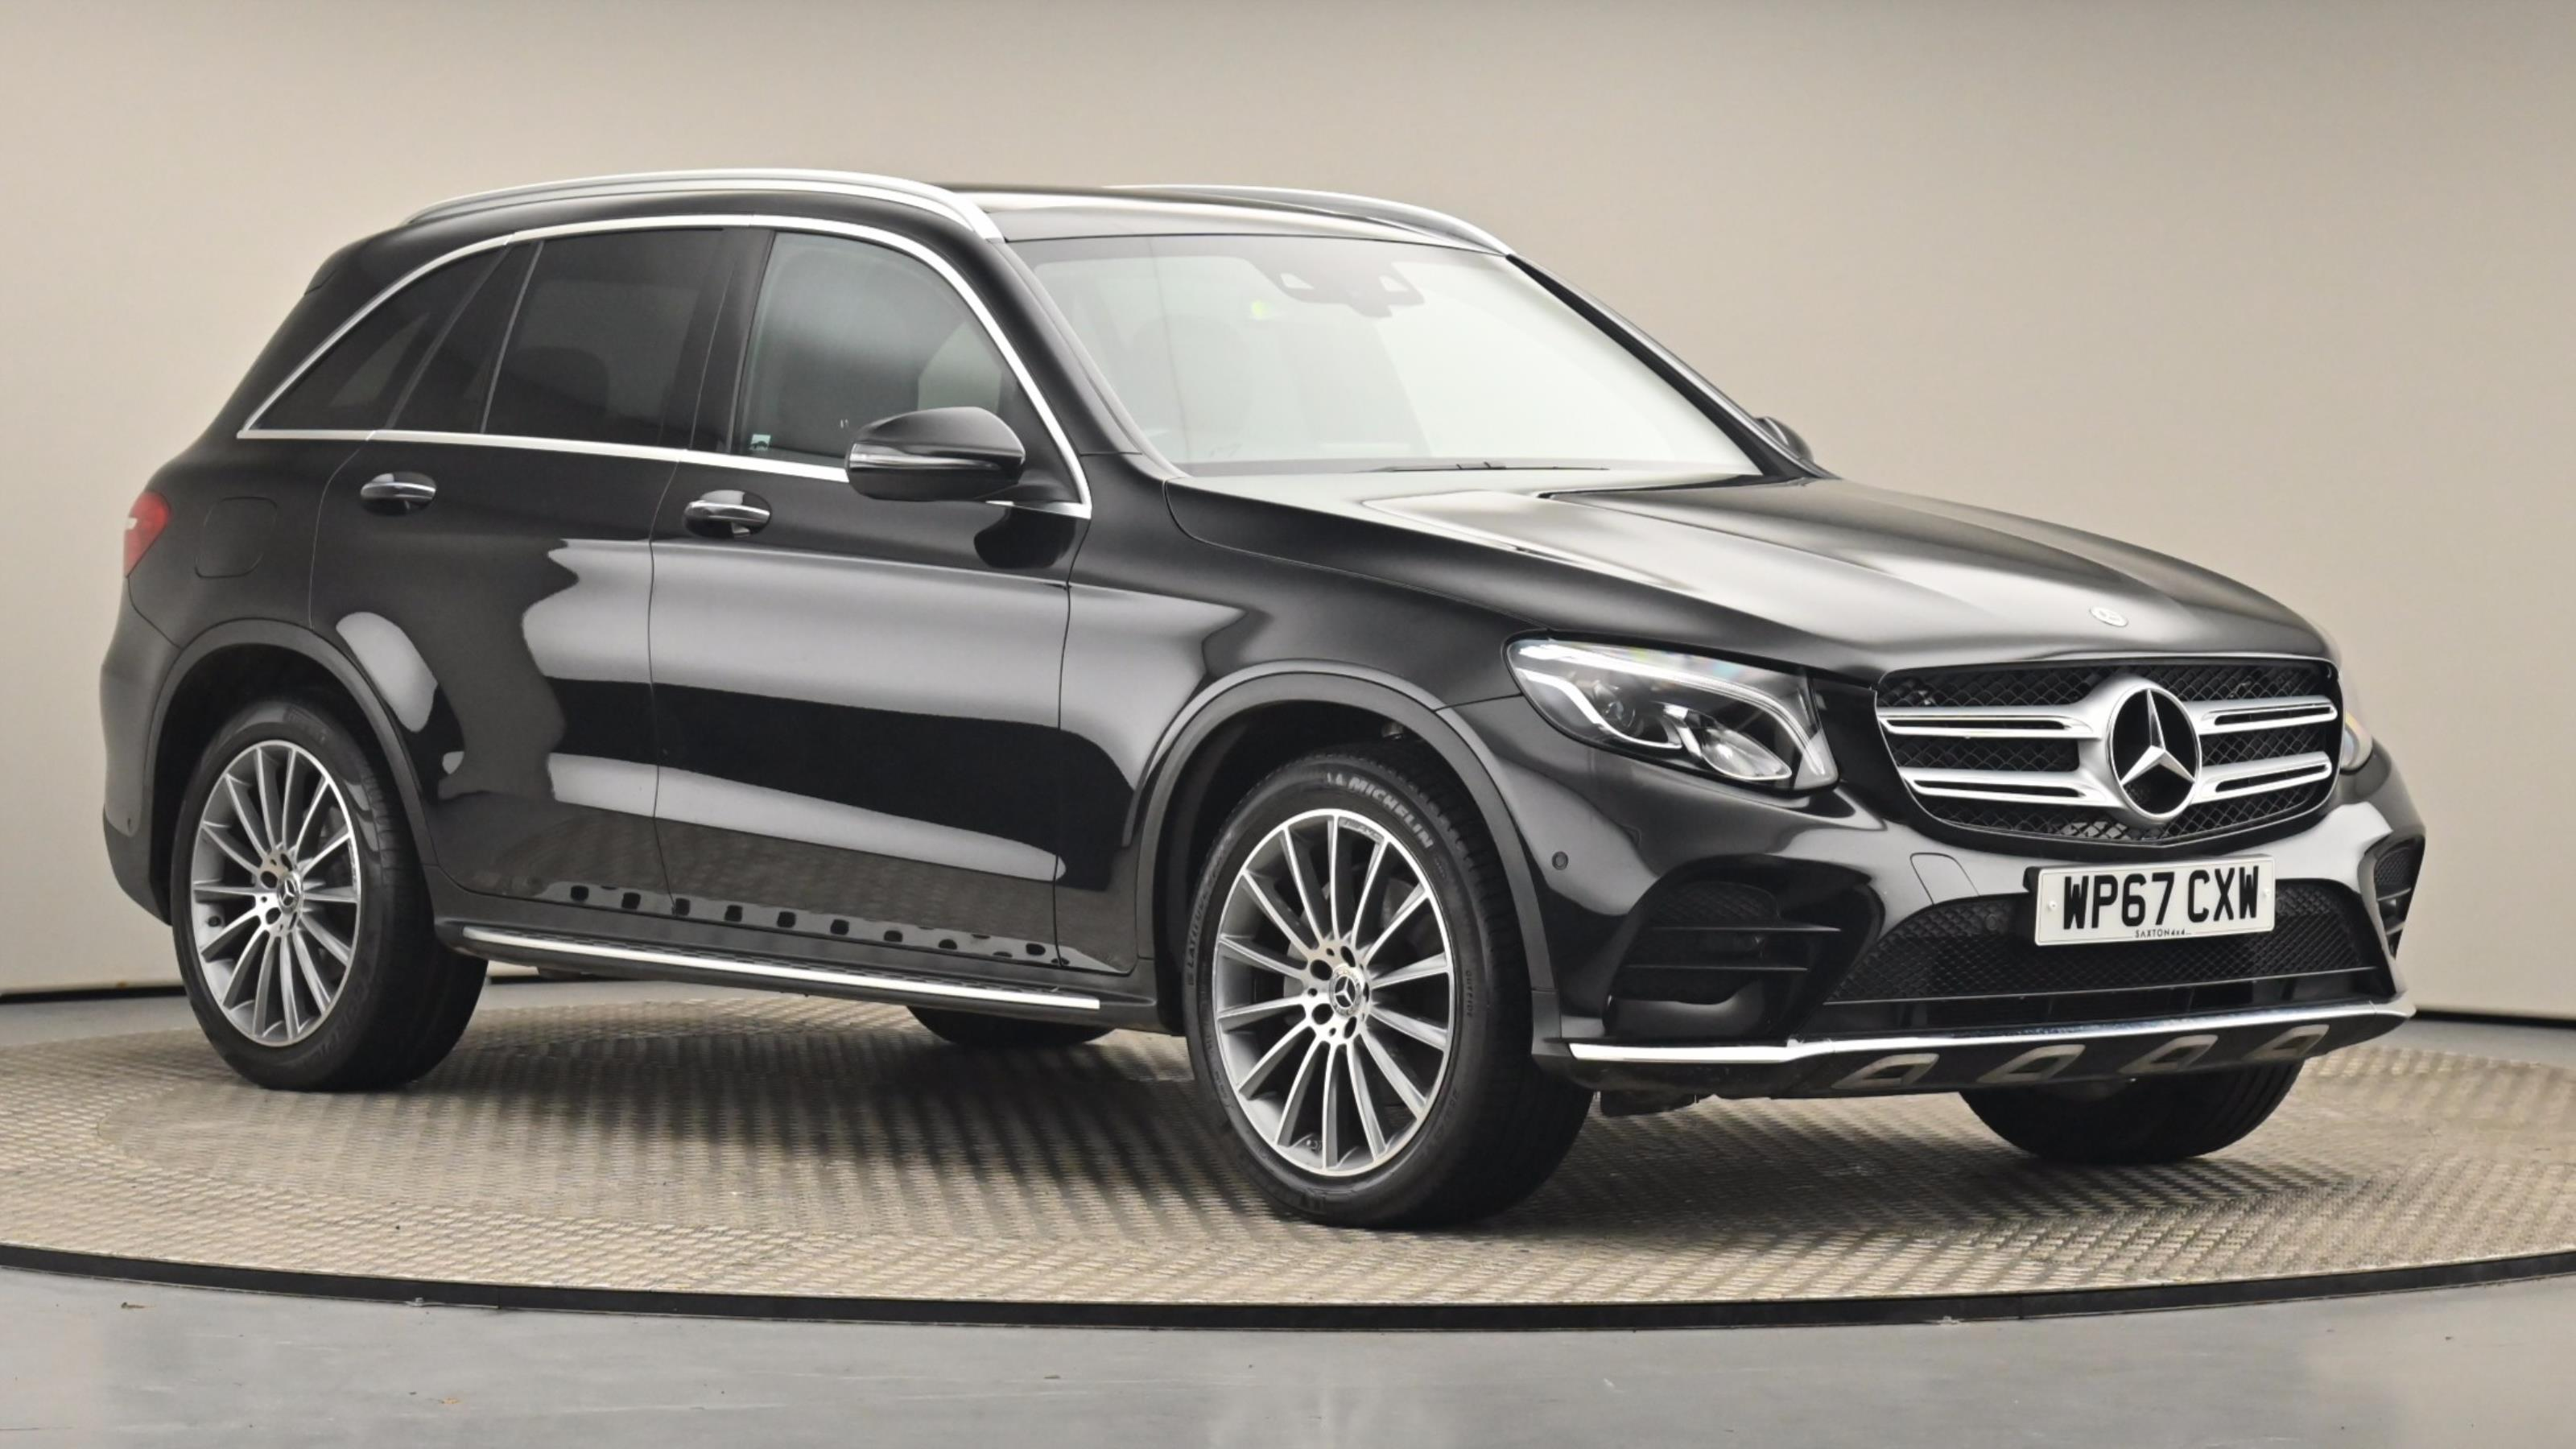 Used 2017 Mercedes-Benz GLC GLC 220d 4Matic AMG Line Premium 5dr 9G-Tronic at Saxton4x4